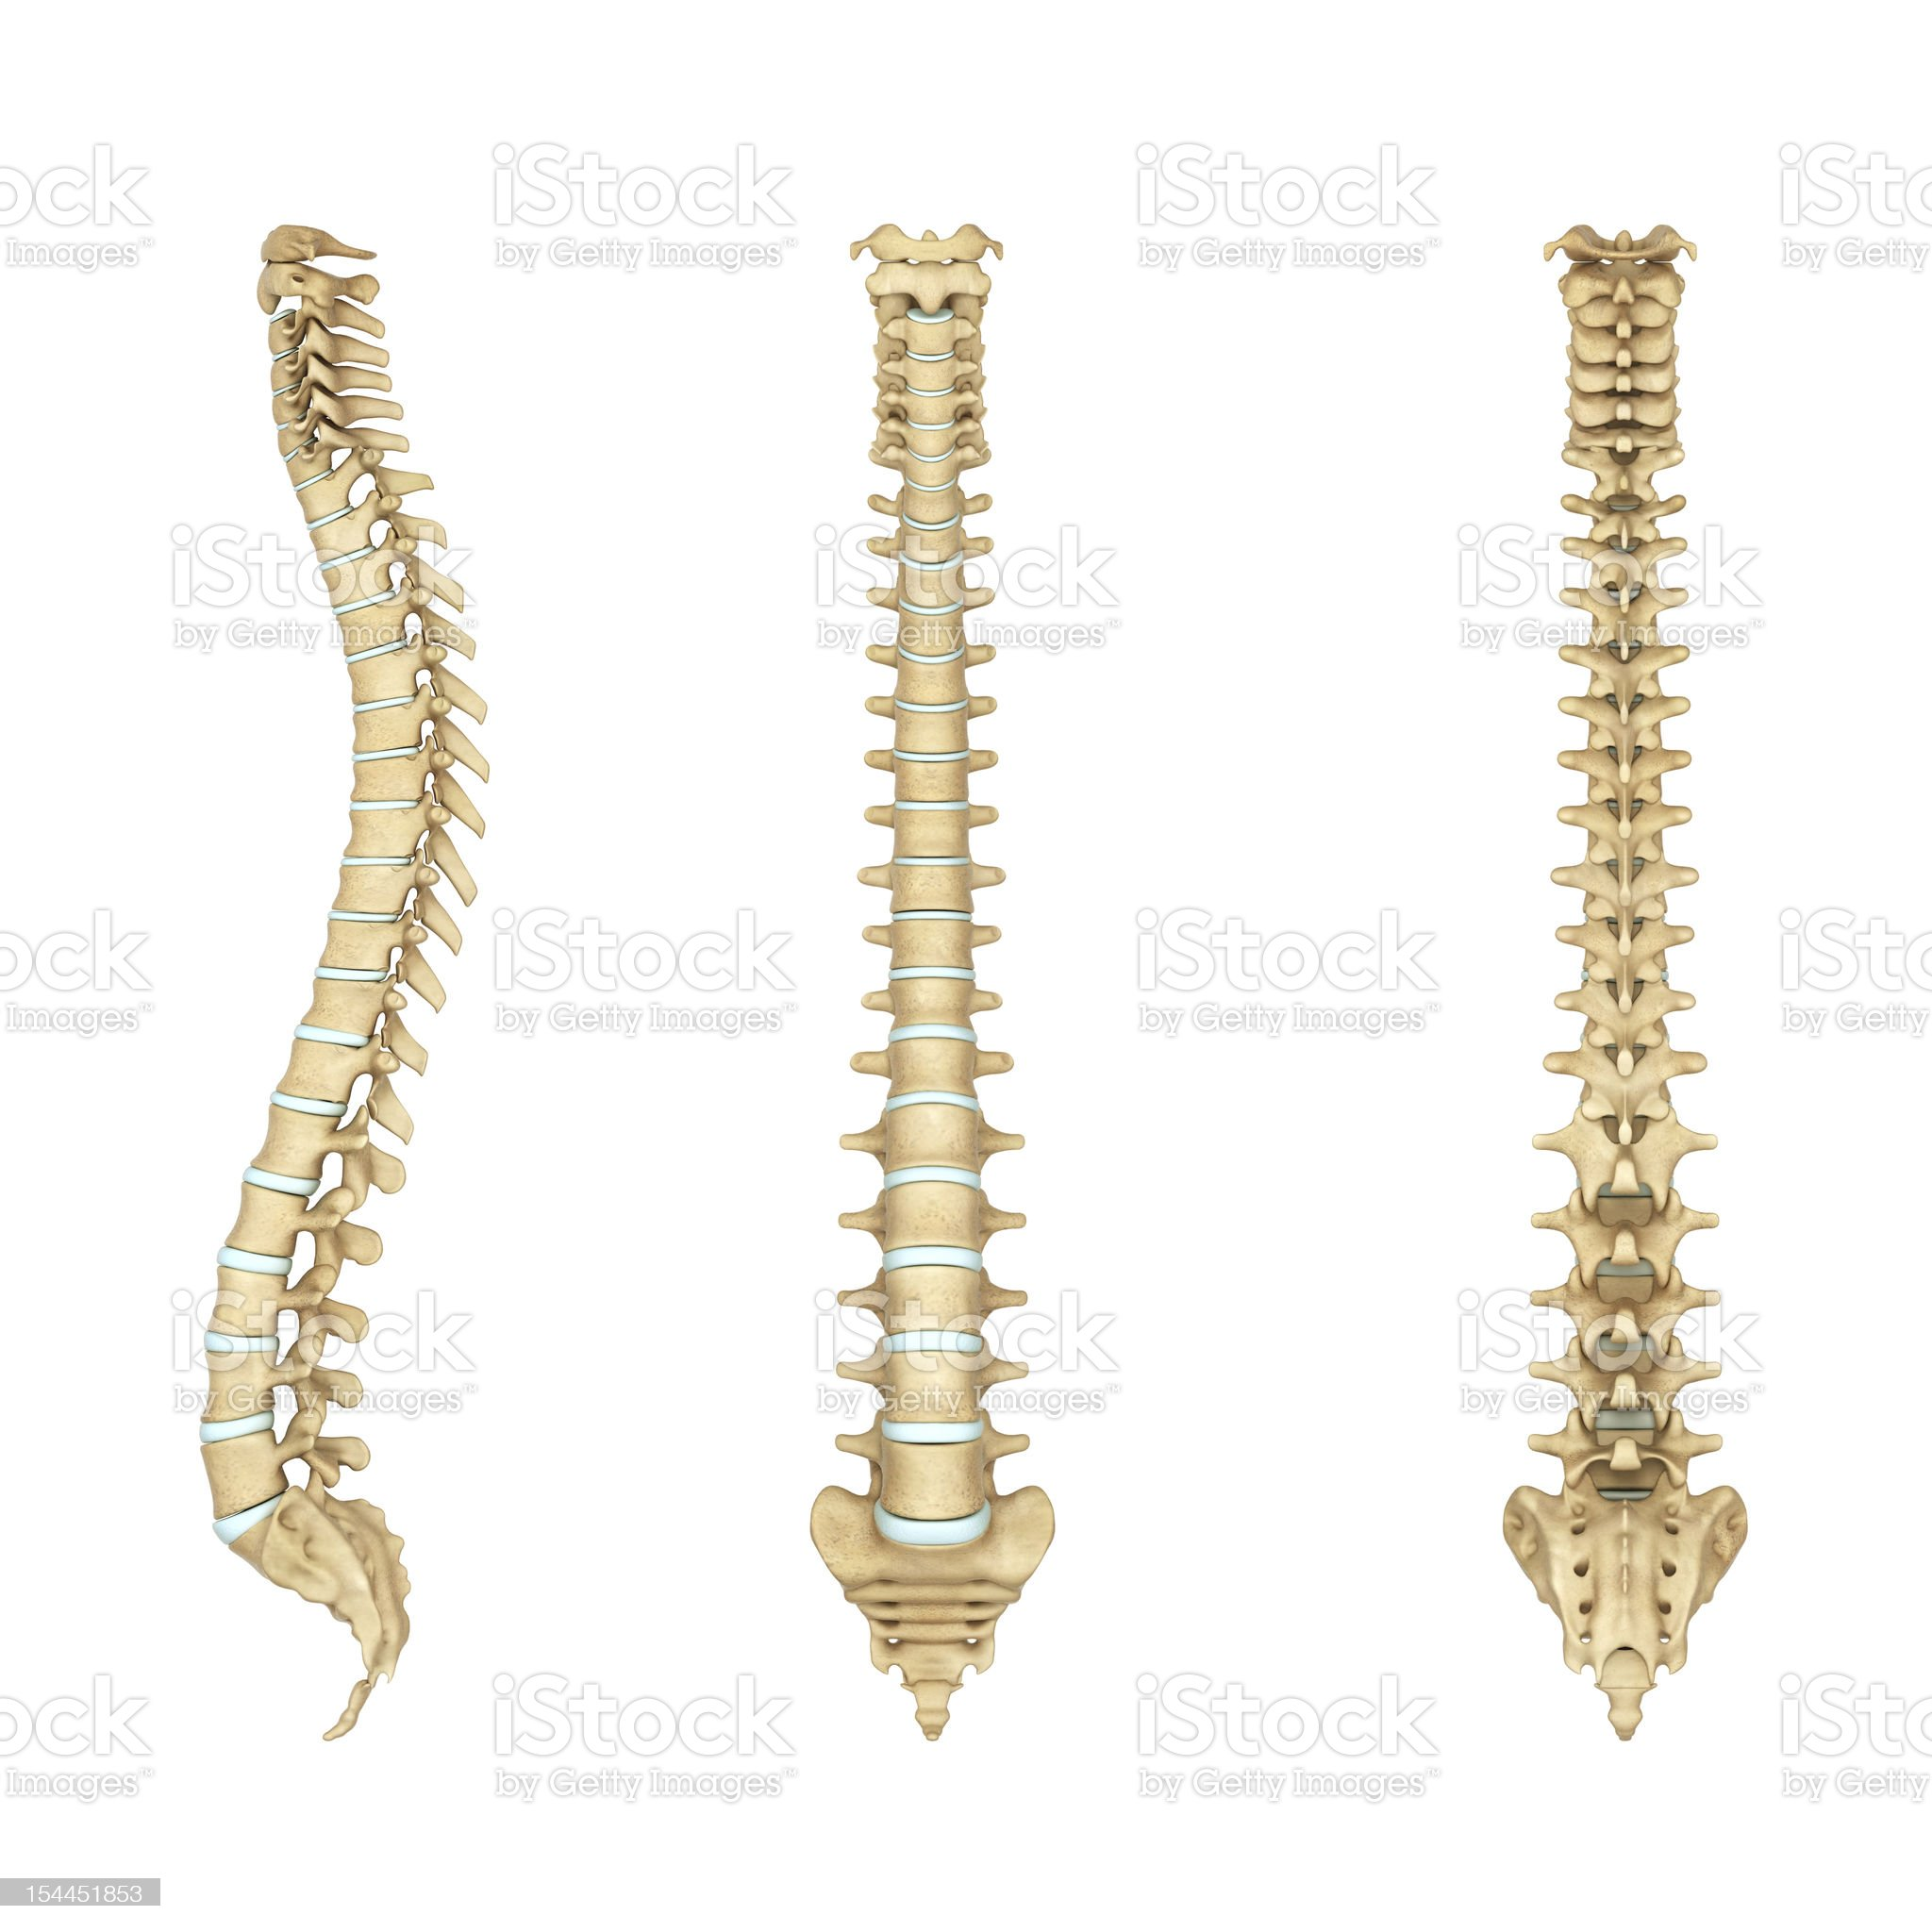 Anatomy illustration of a human spine royalty-free stock photo